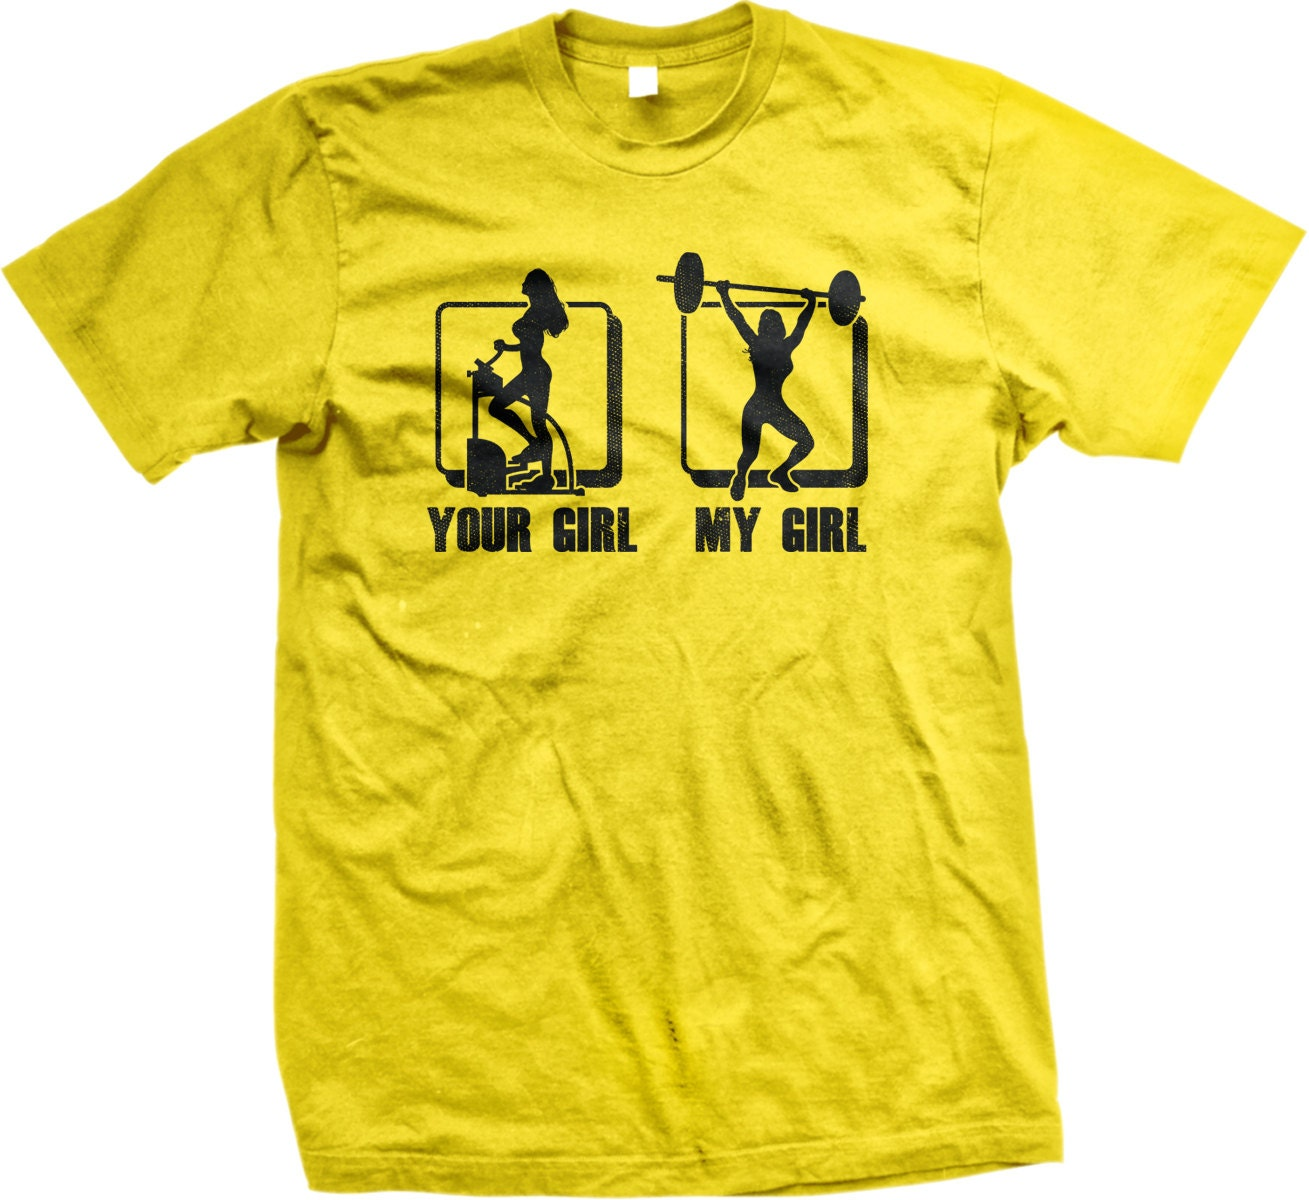 Your girl my girl men 39 s gym t shirt personal trainer for Custom personal trainer shirts